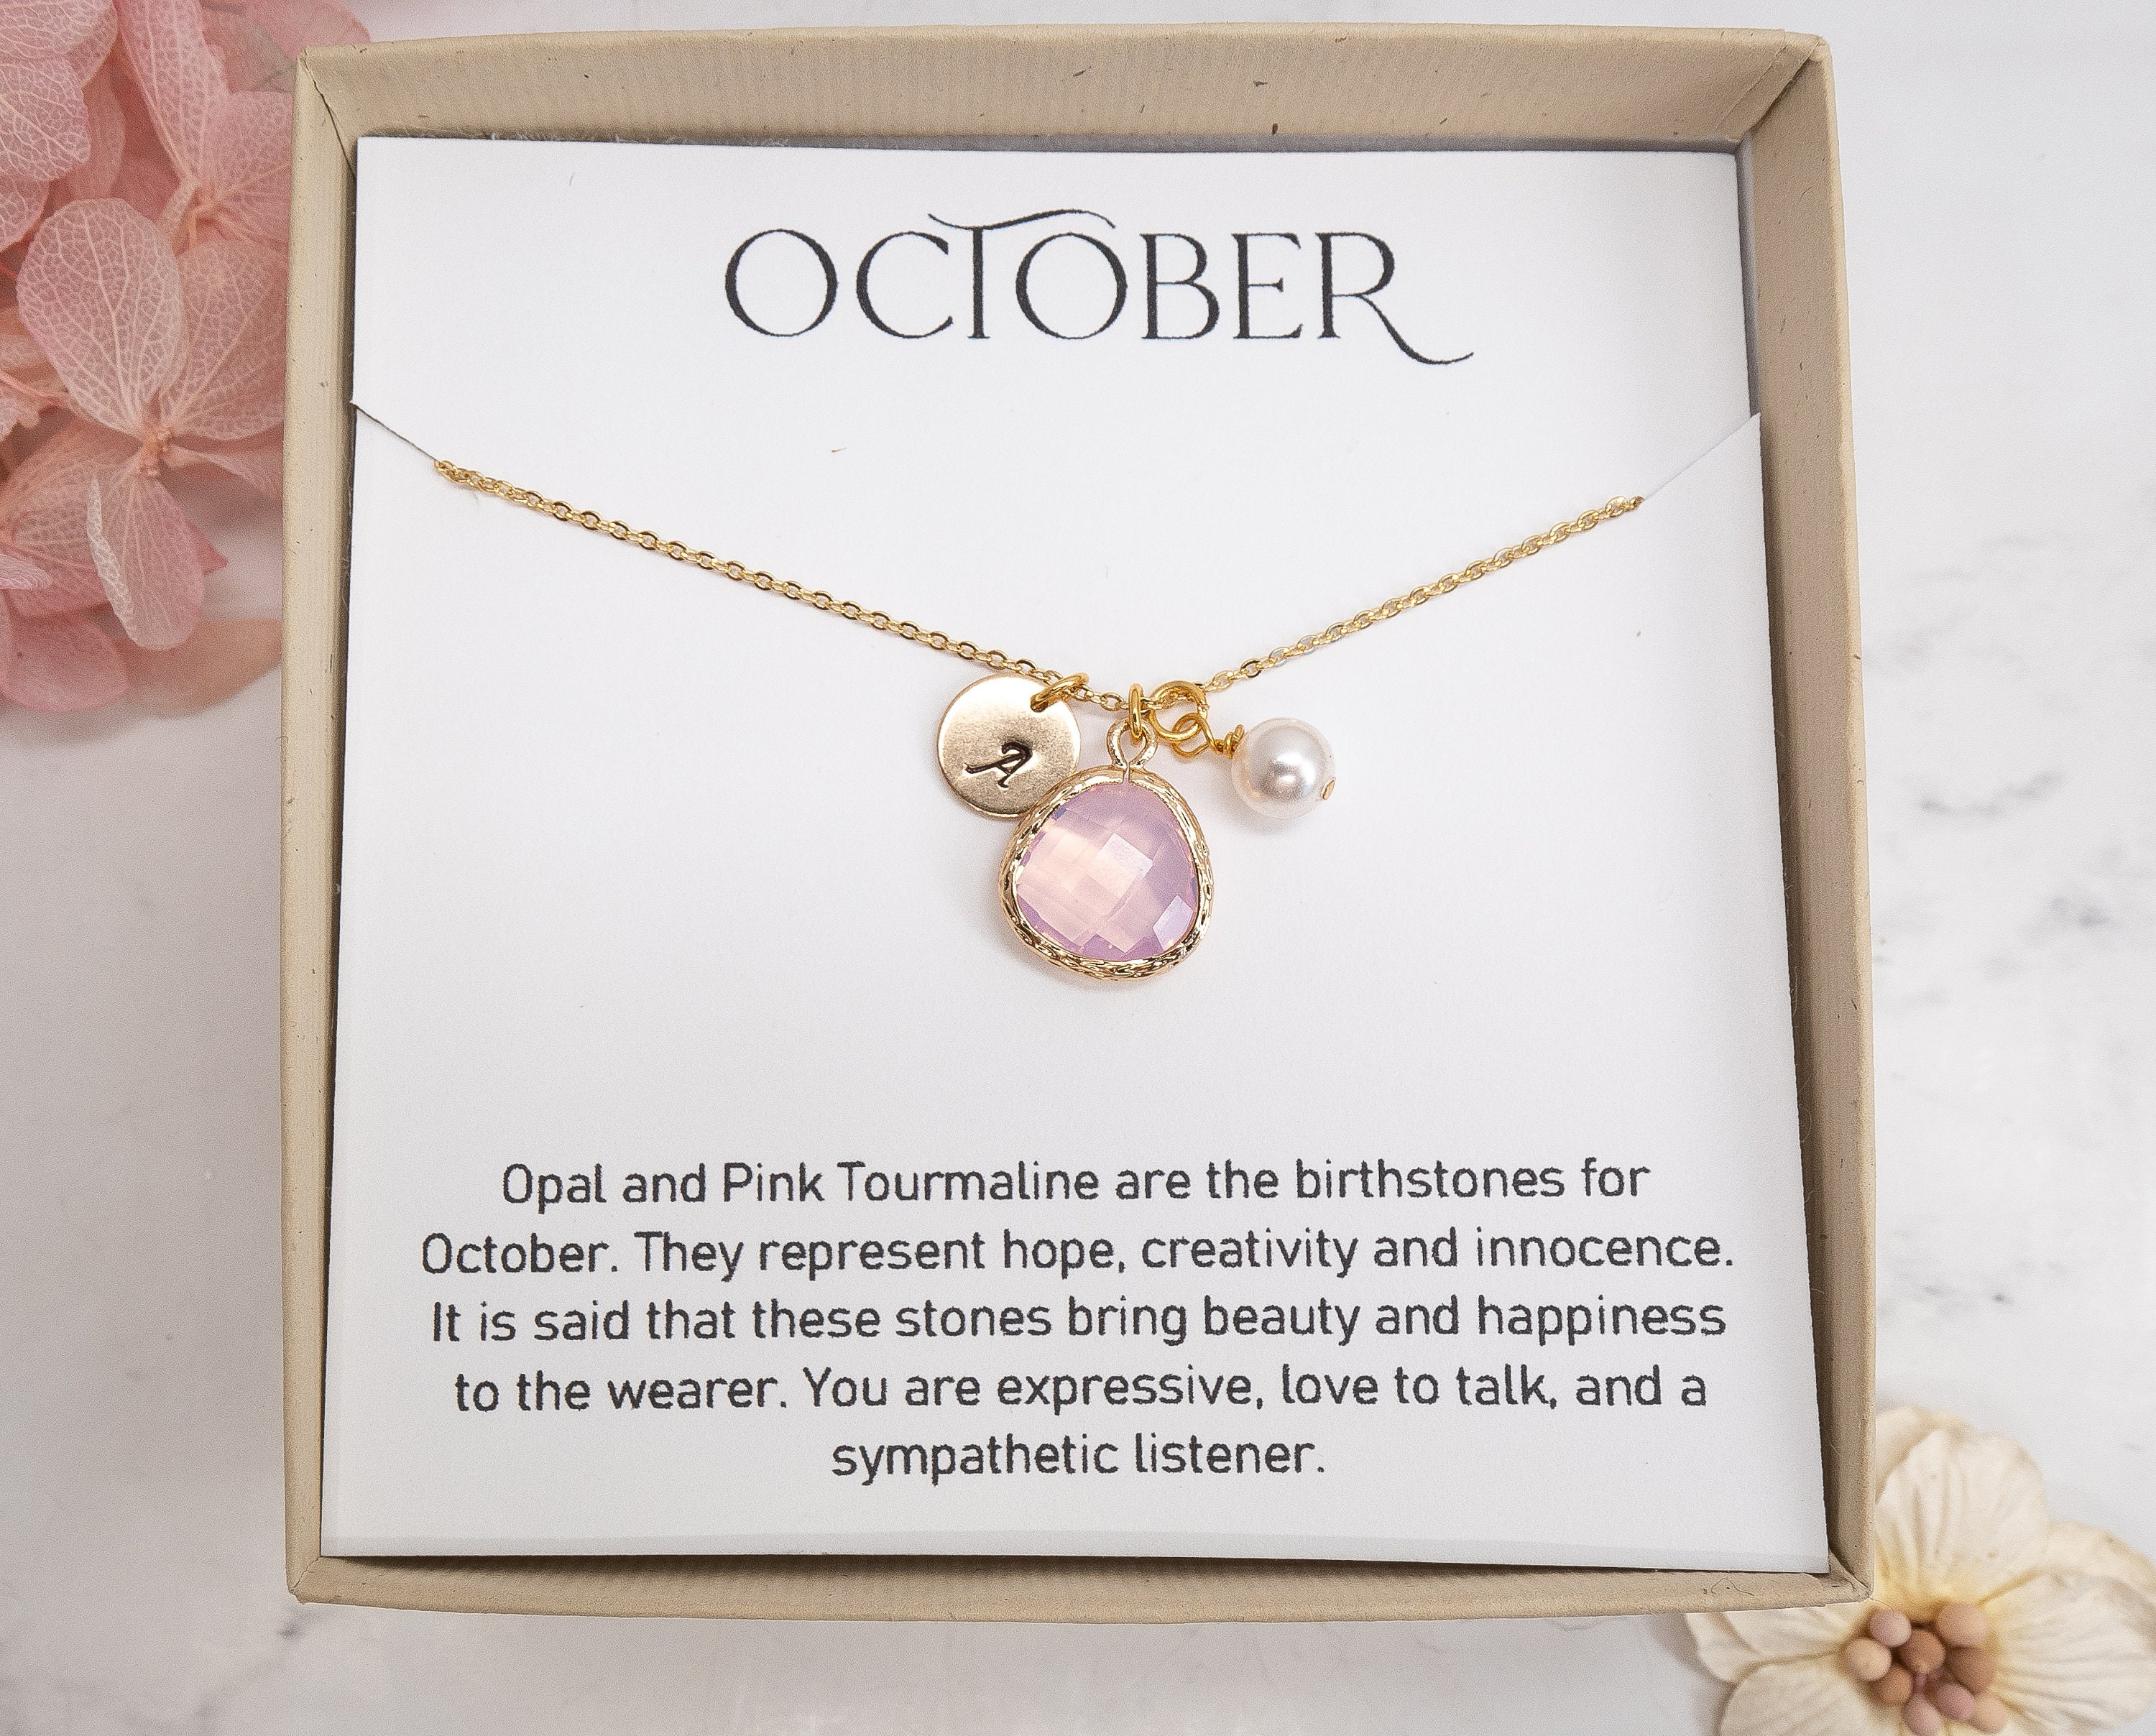 Opal Beaded Necklace Jewelry Opal Jewelry Gift For Women Gift For Mom Daughter Wife Crystal Necklace DIY 665 October Birthstone